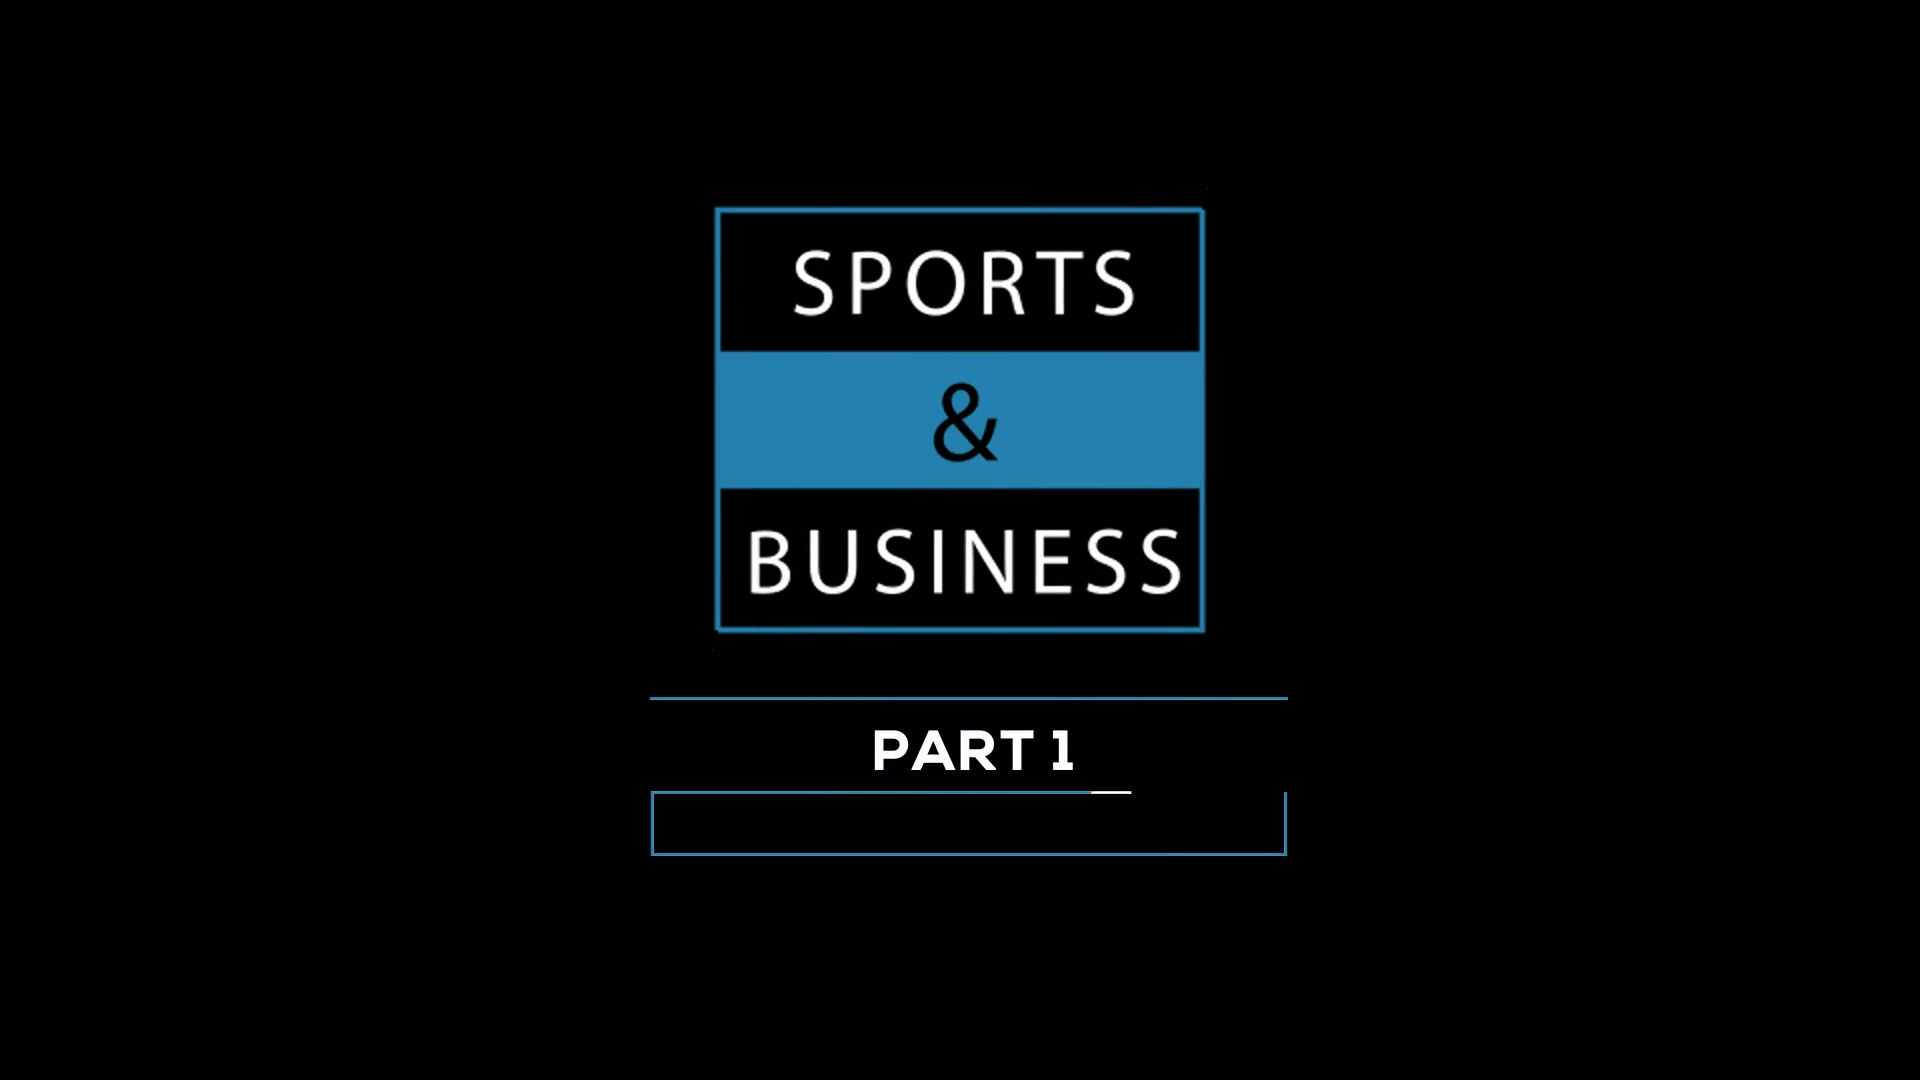 Episode 3: Sports and Business Similarities